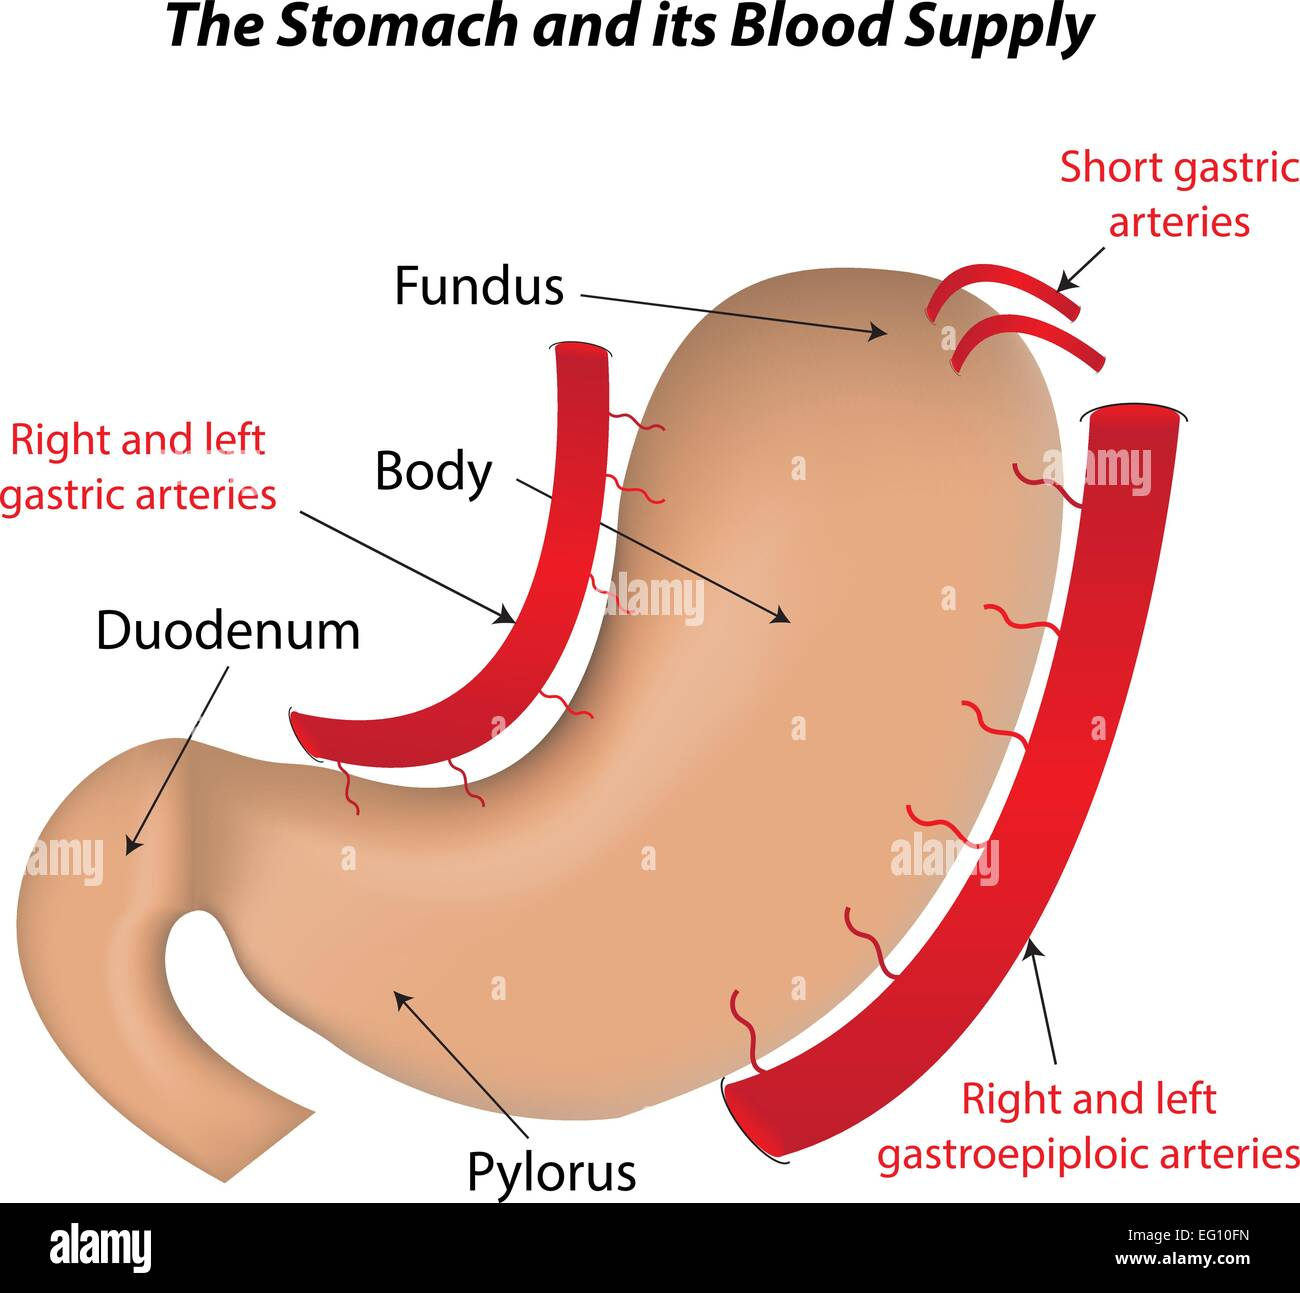 Gastric Artery Stock Photos & Gastric Artery Stock Images - Alamy